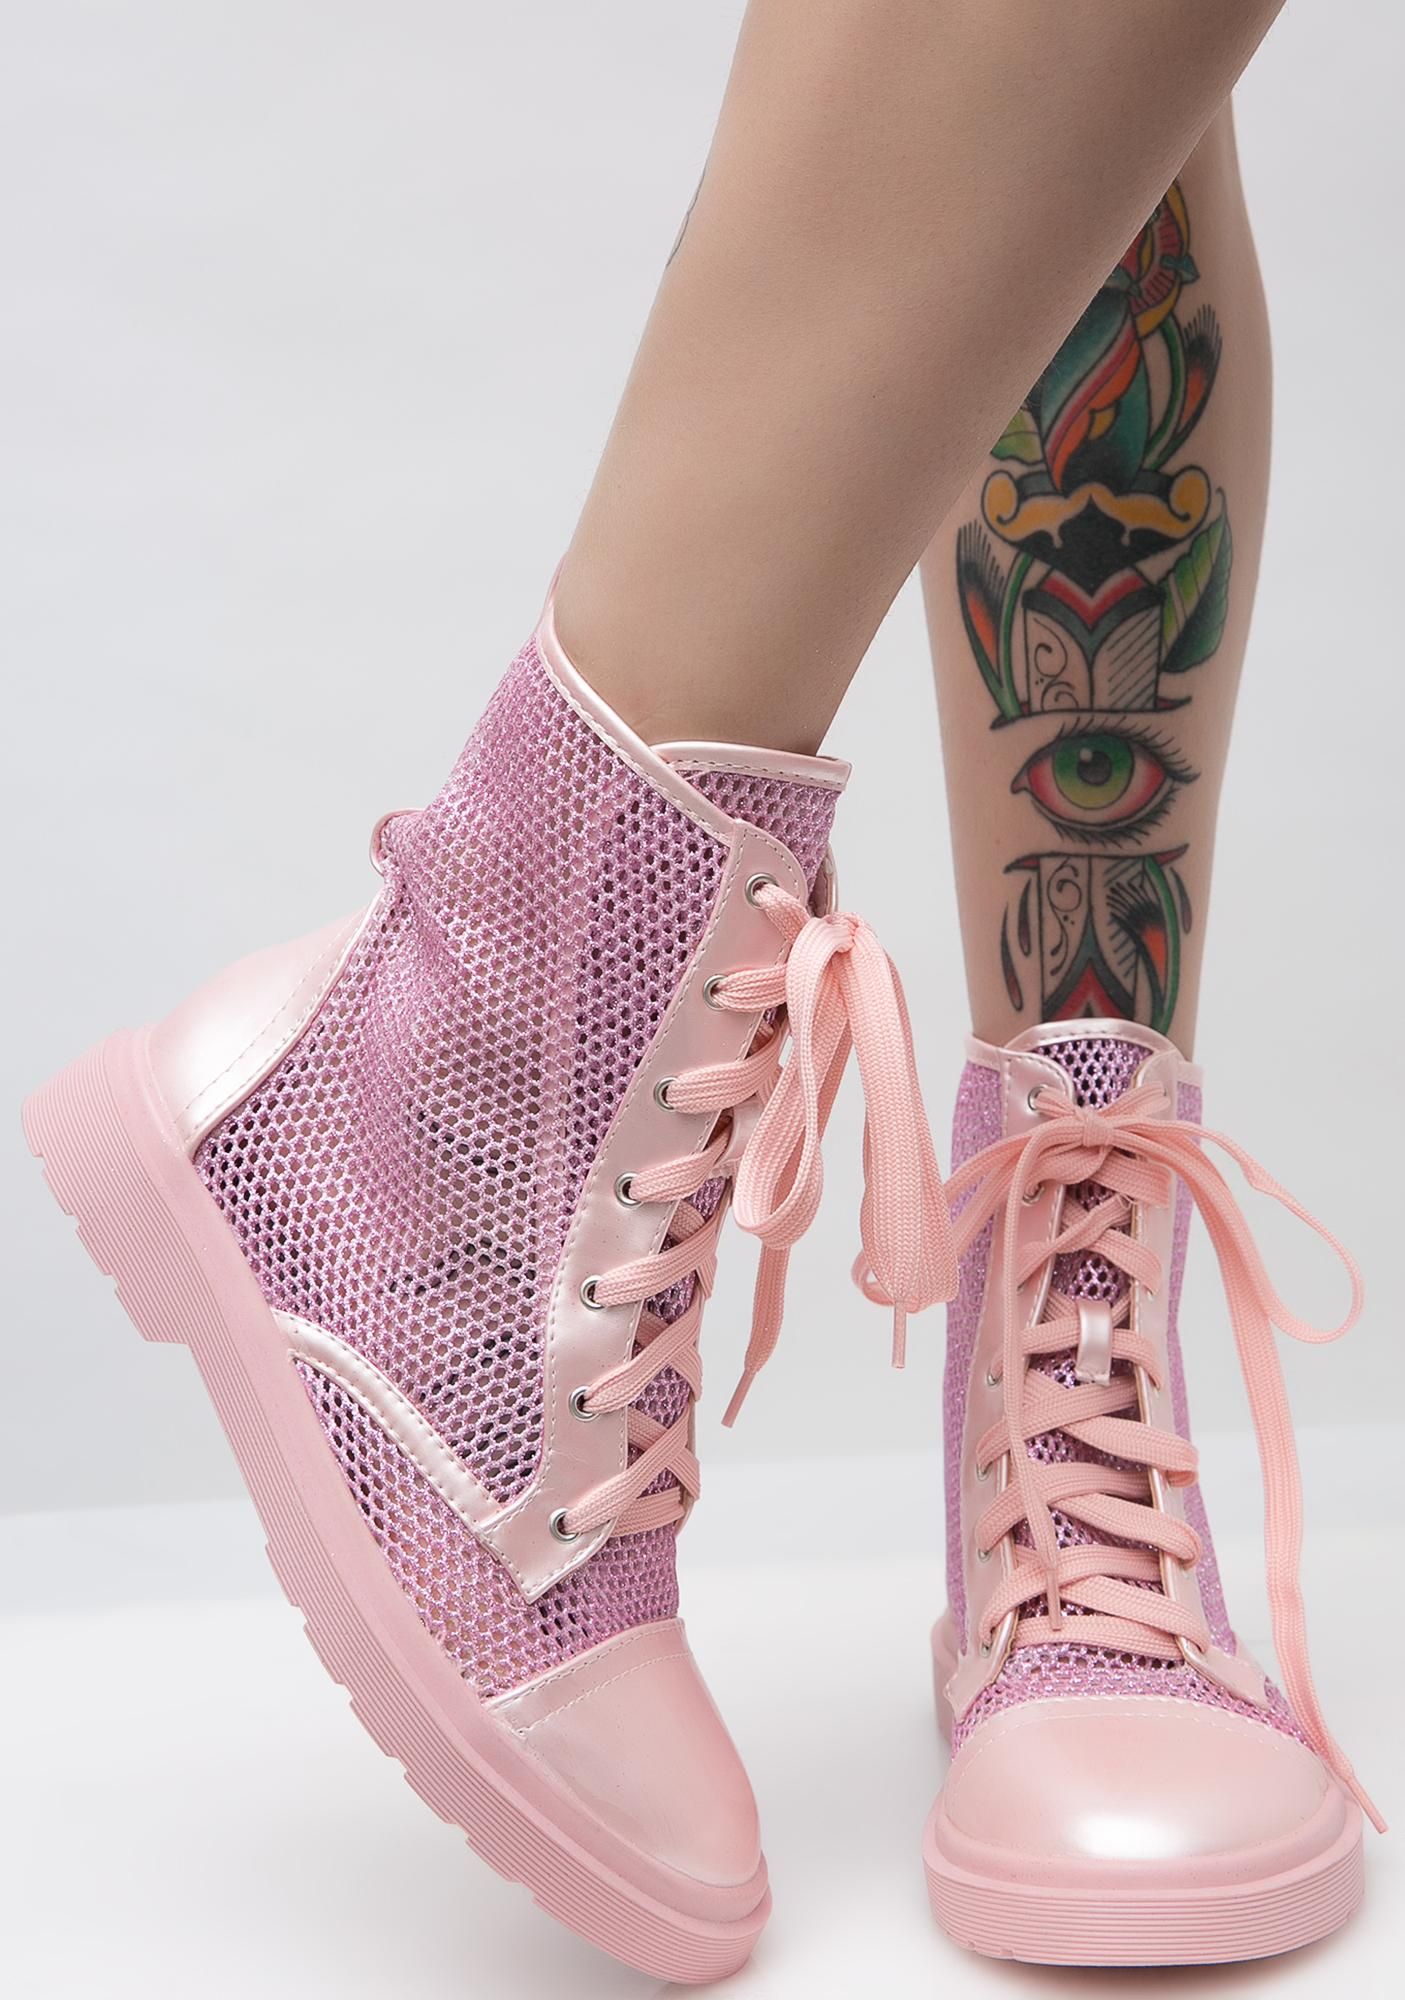 Blush Get To Steppin' Combat Boots